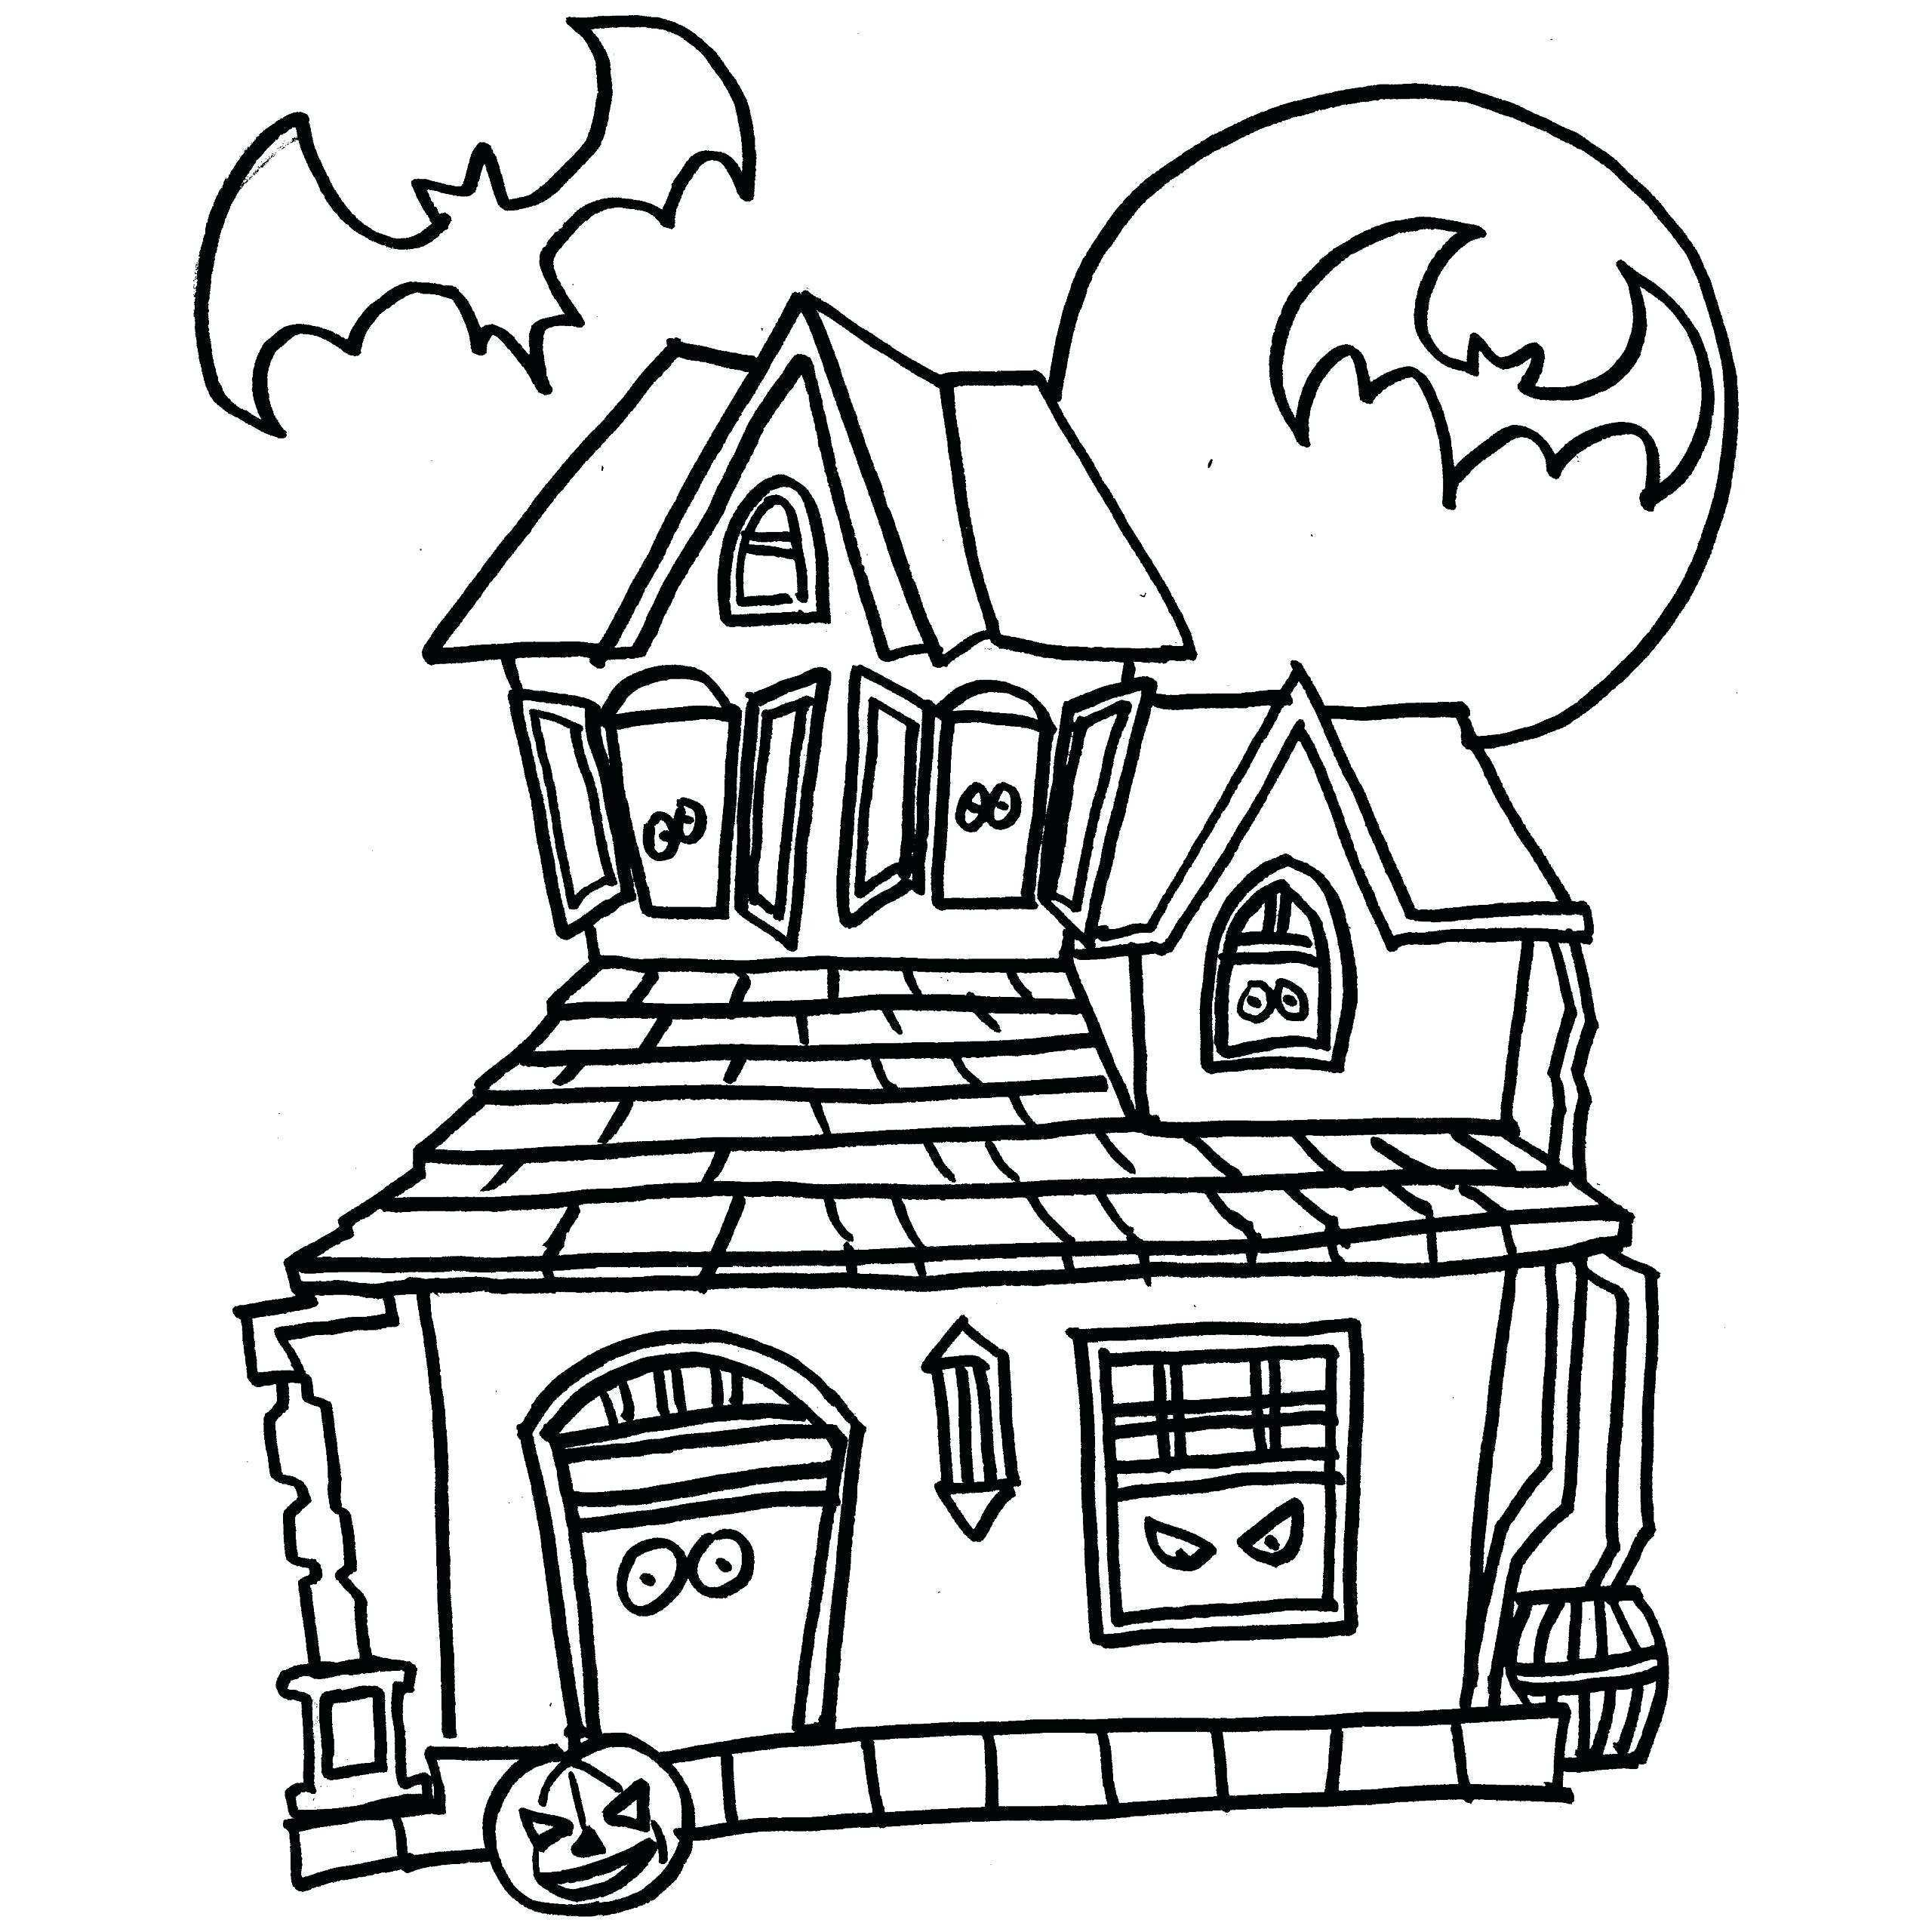 Doll House Coloring Pages - Coloring Home